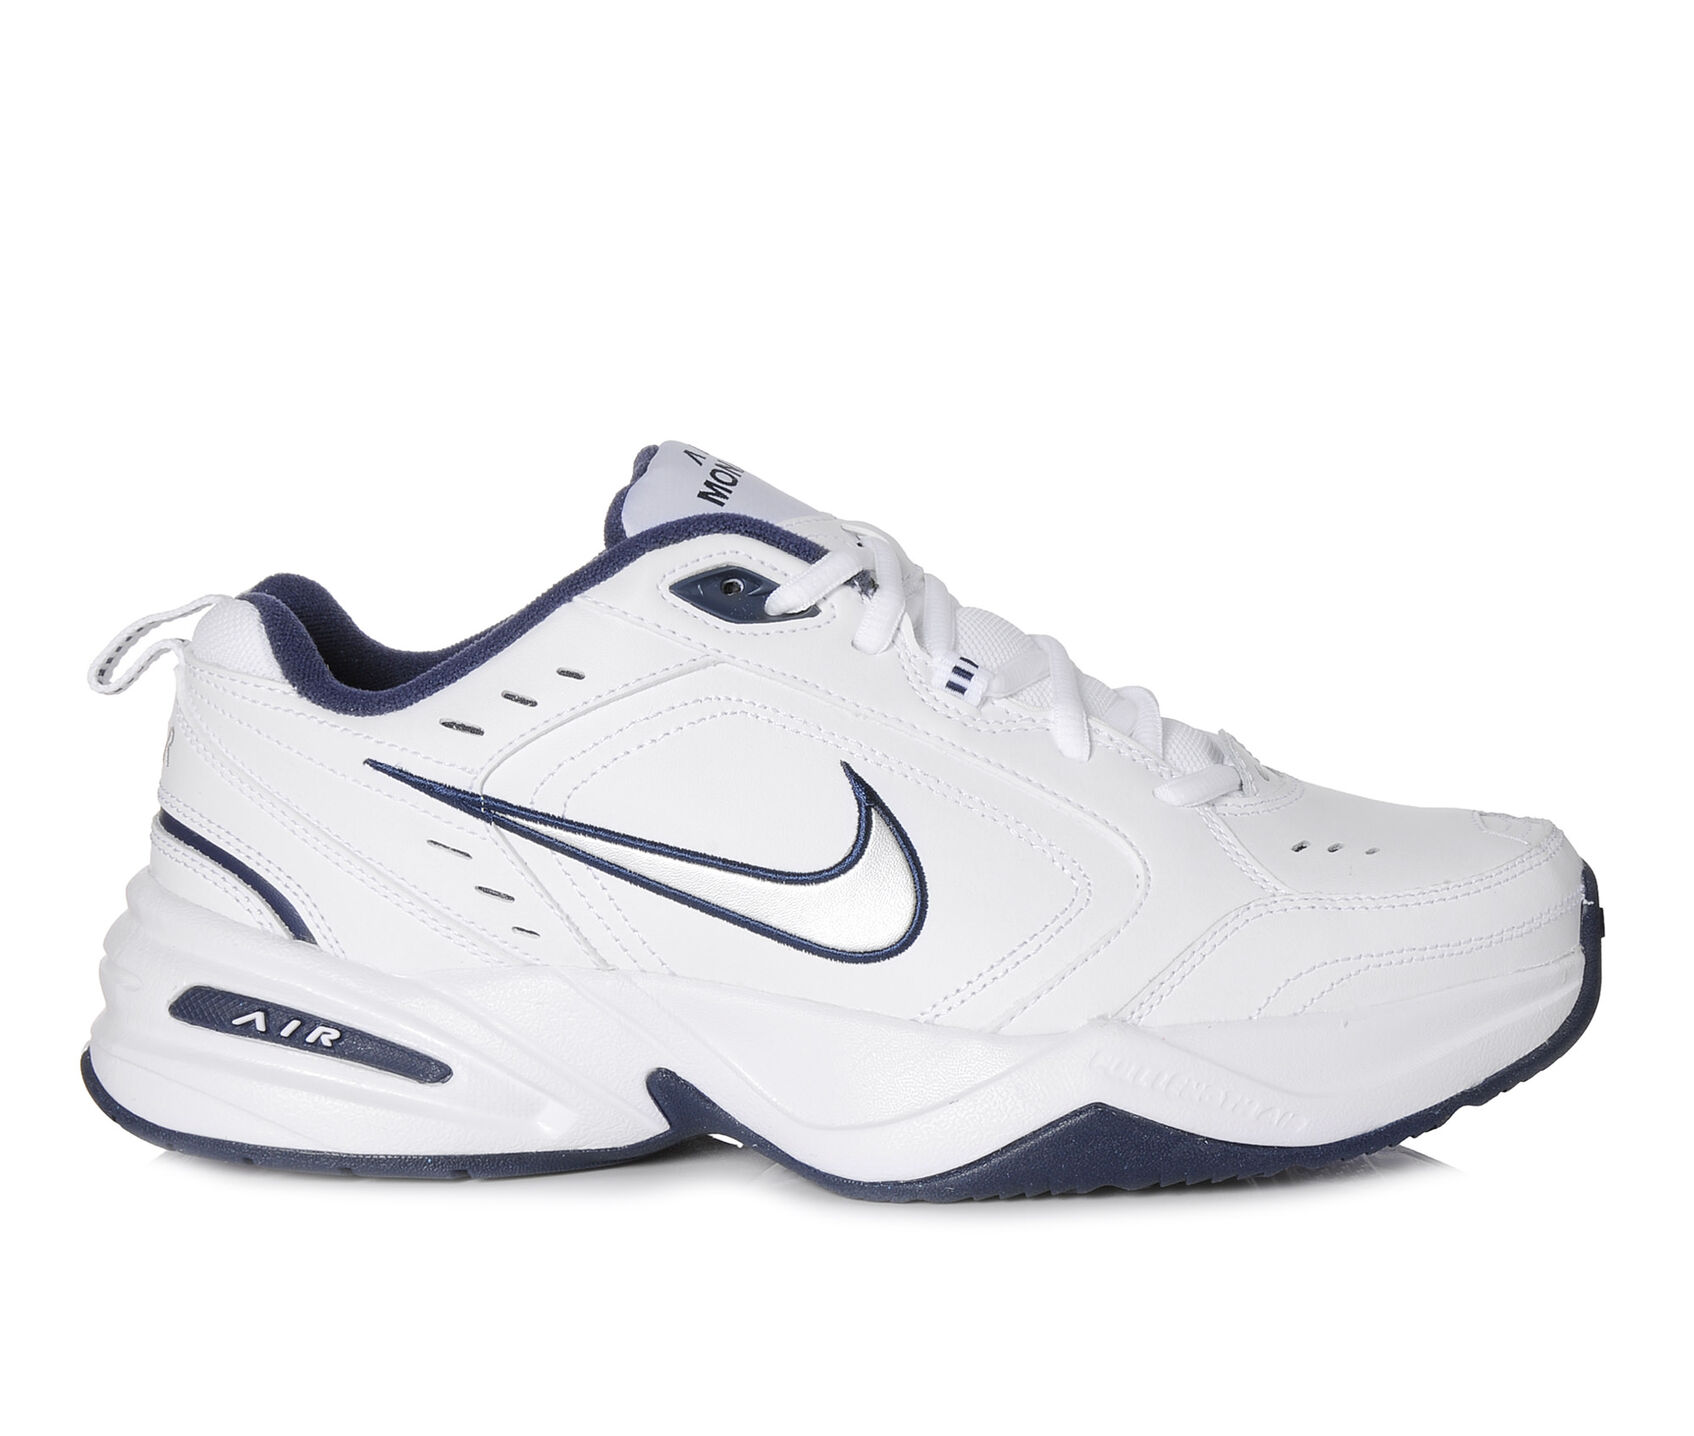 Men's Nike Air Monarch IV Training Shoes | Shoe Carnival